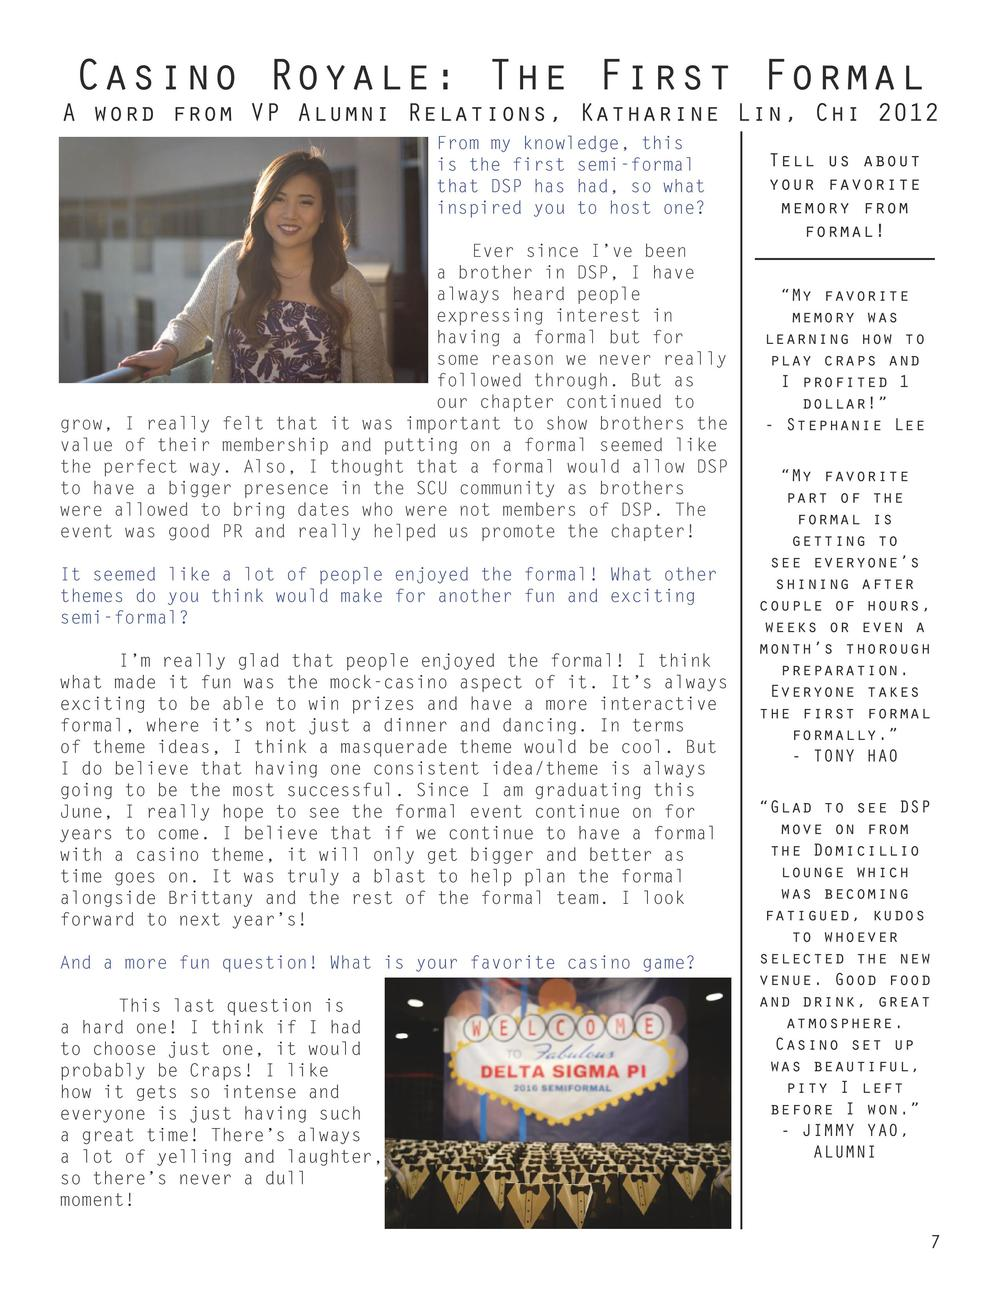 DSP Final-page-007.jpg